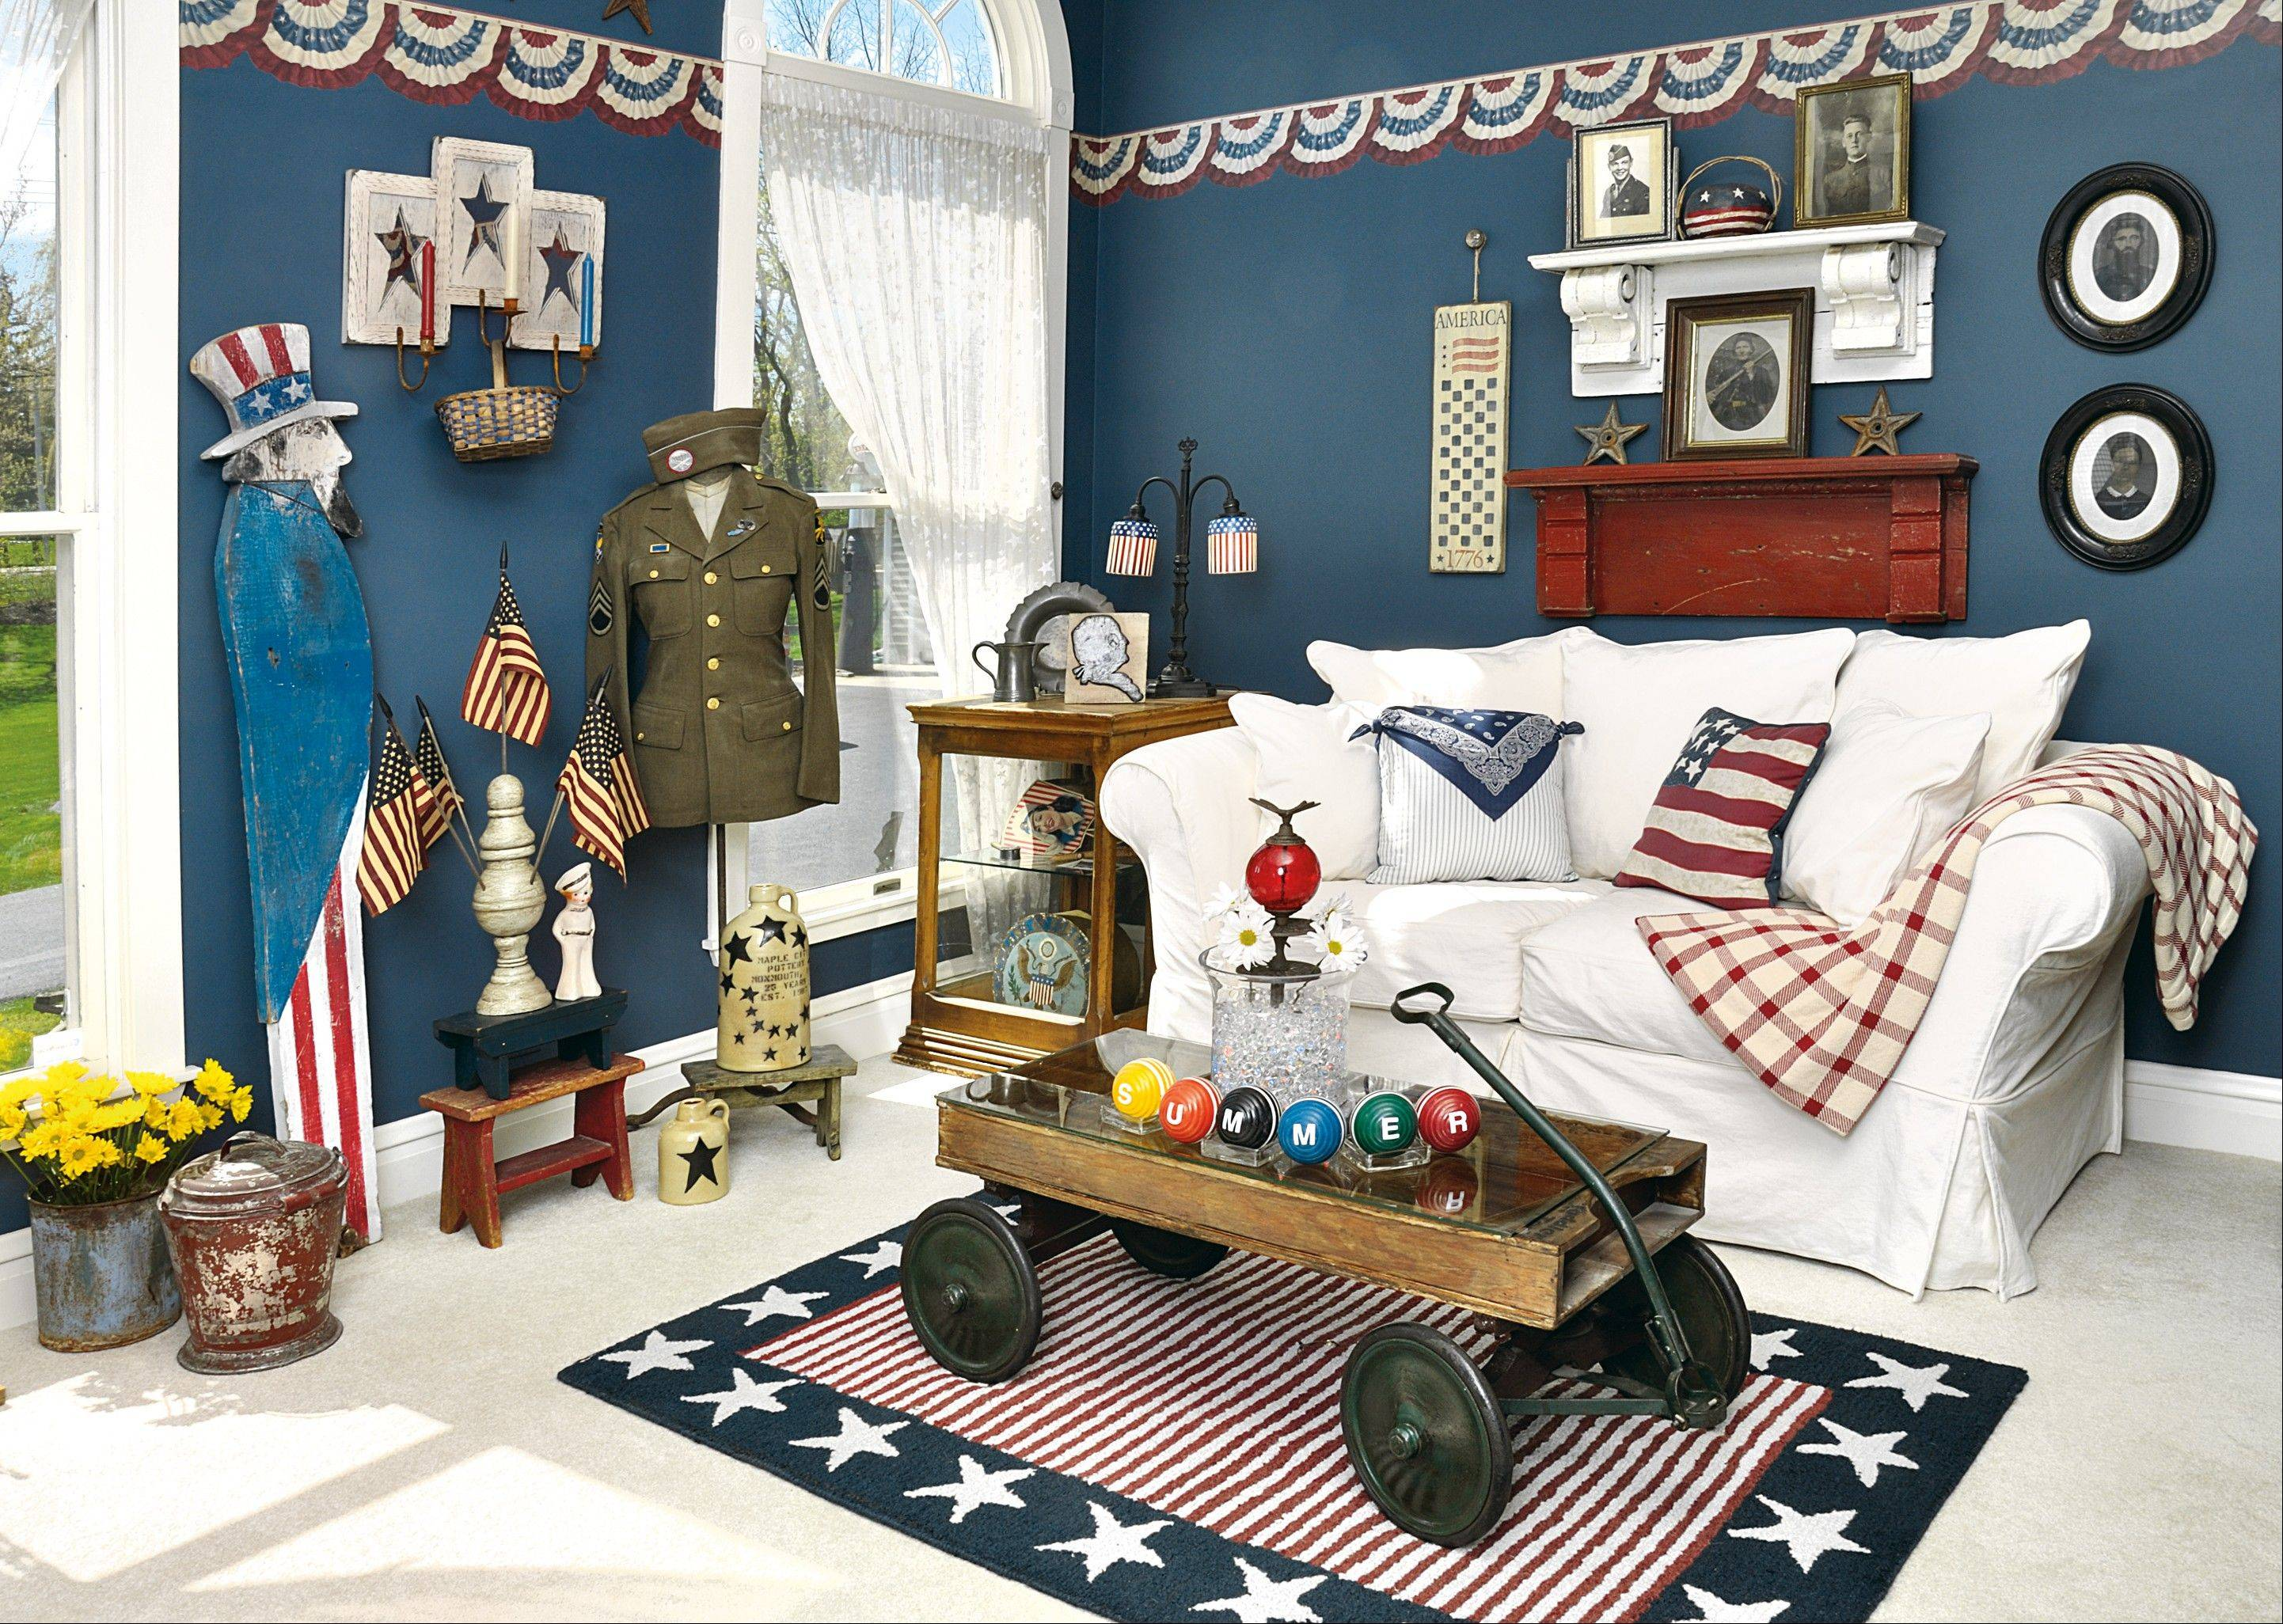 SALUTING AMERICANA: Tips 7 to 15 will show how Country Sampler stylists gave homage to Americana.